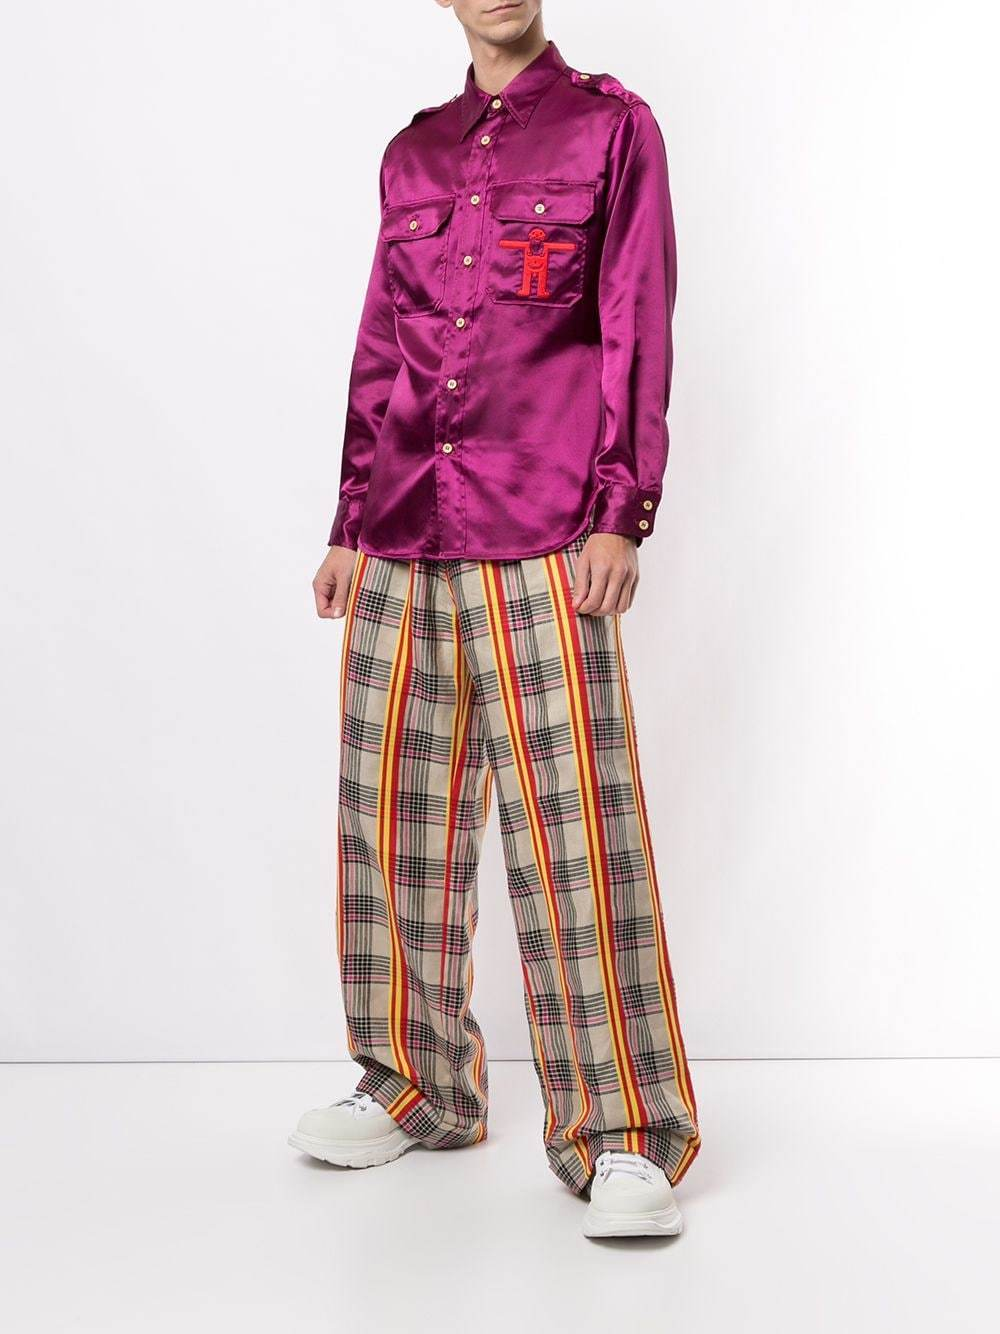 shop walter van beirendonck clothing